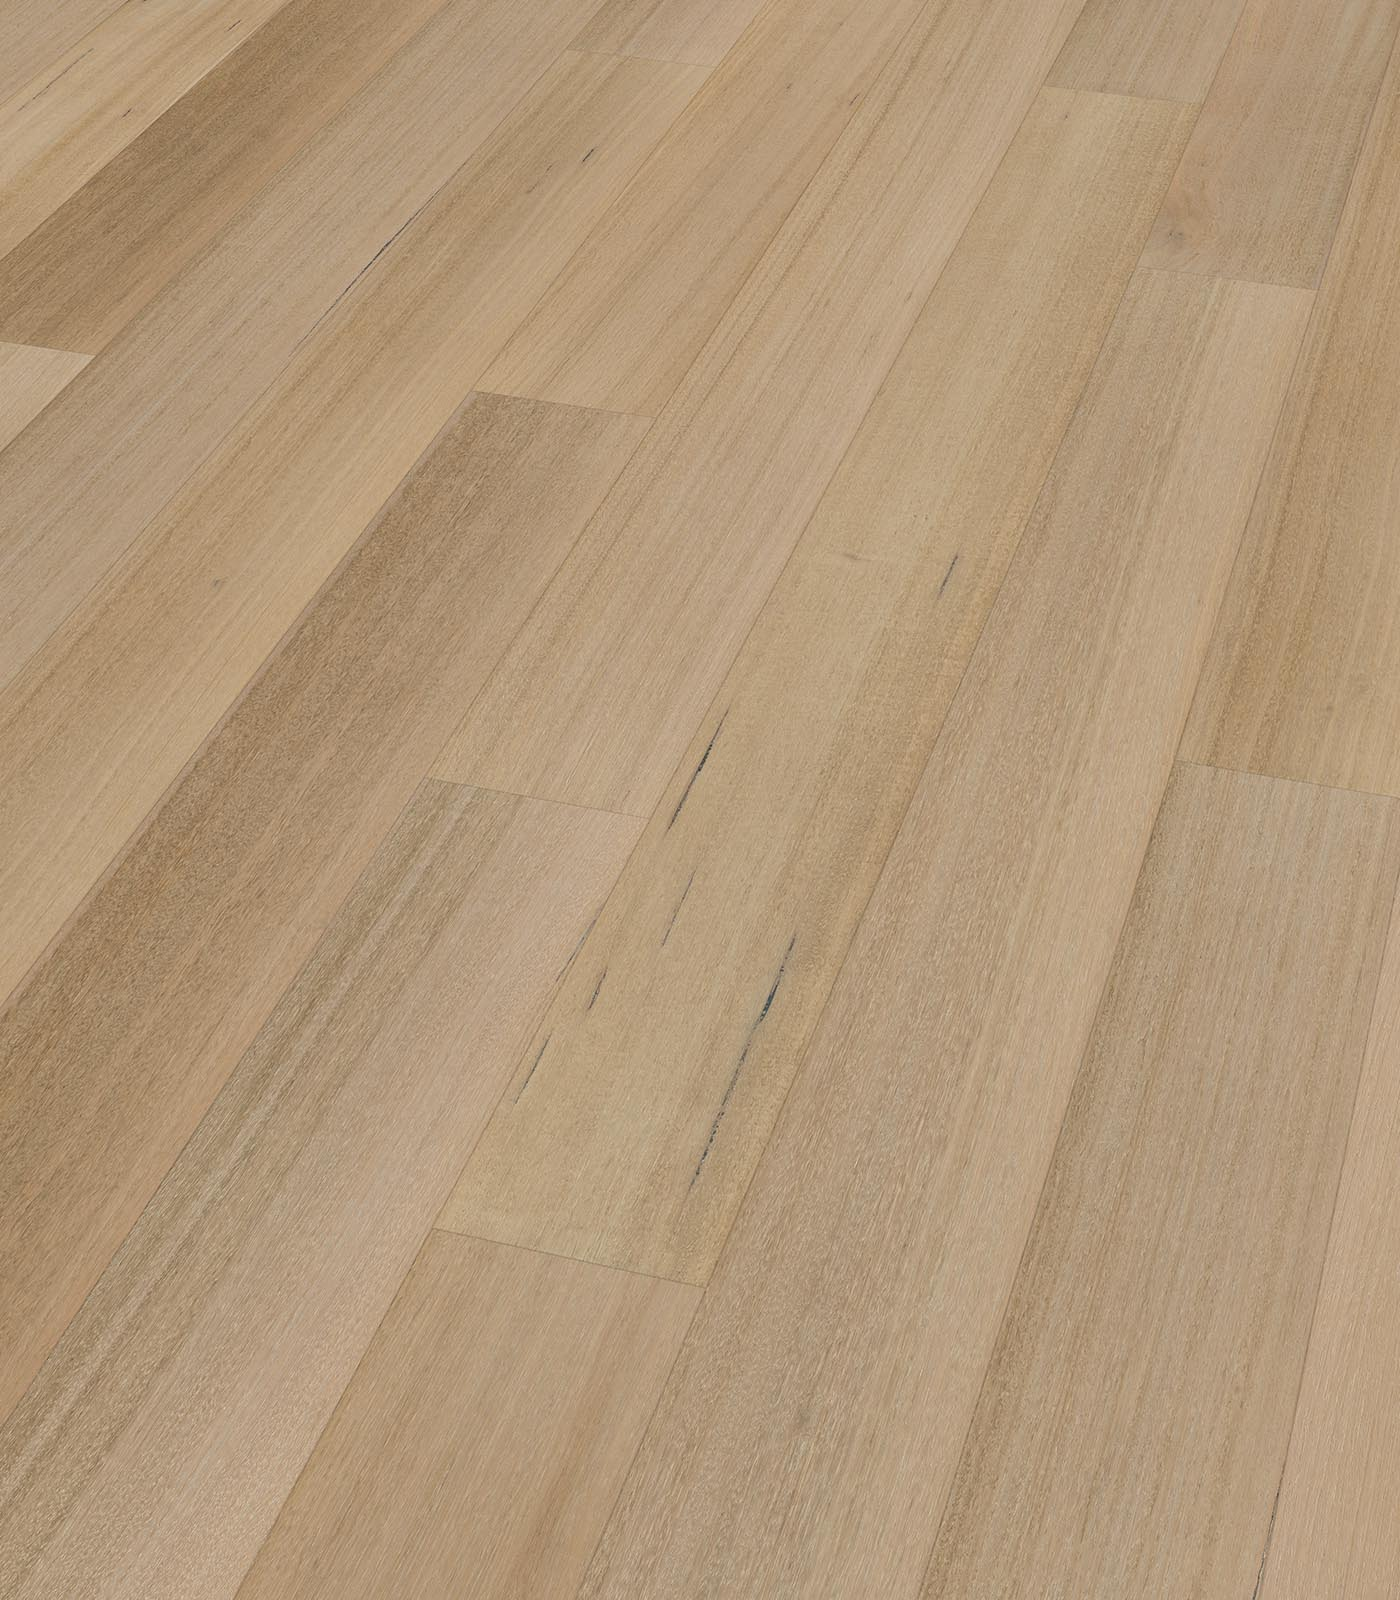 Queenstown-After Oak Collection-Tasmanian Oak Floors-angle